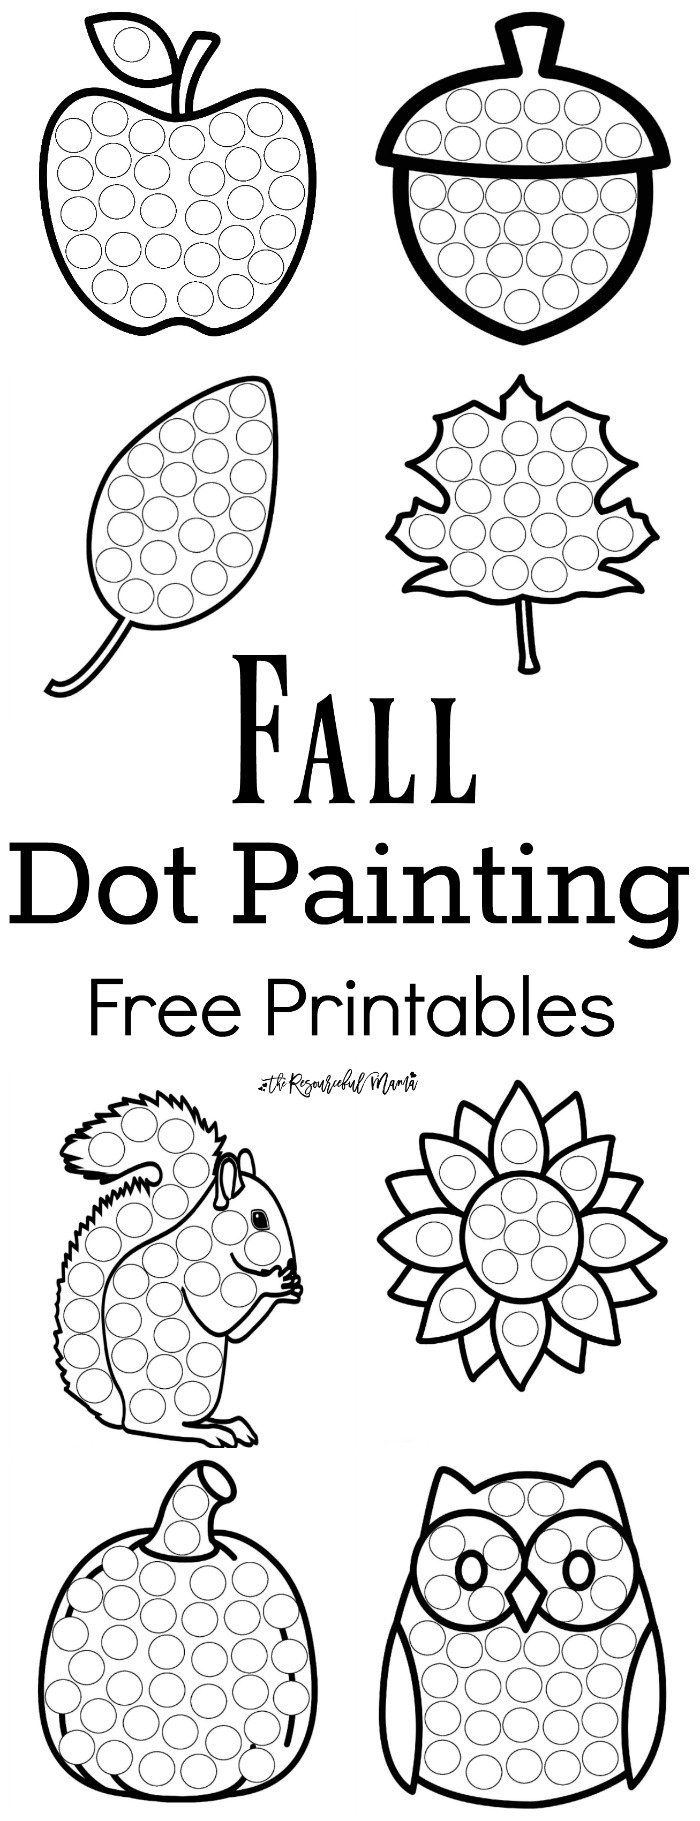 hight resolution of these fall dot painting worksheets are a fun mess free painting activity for young kids that work on hand eye coordination and fine motor skills